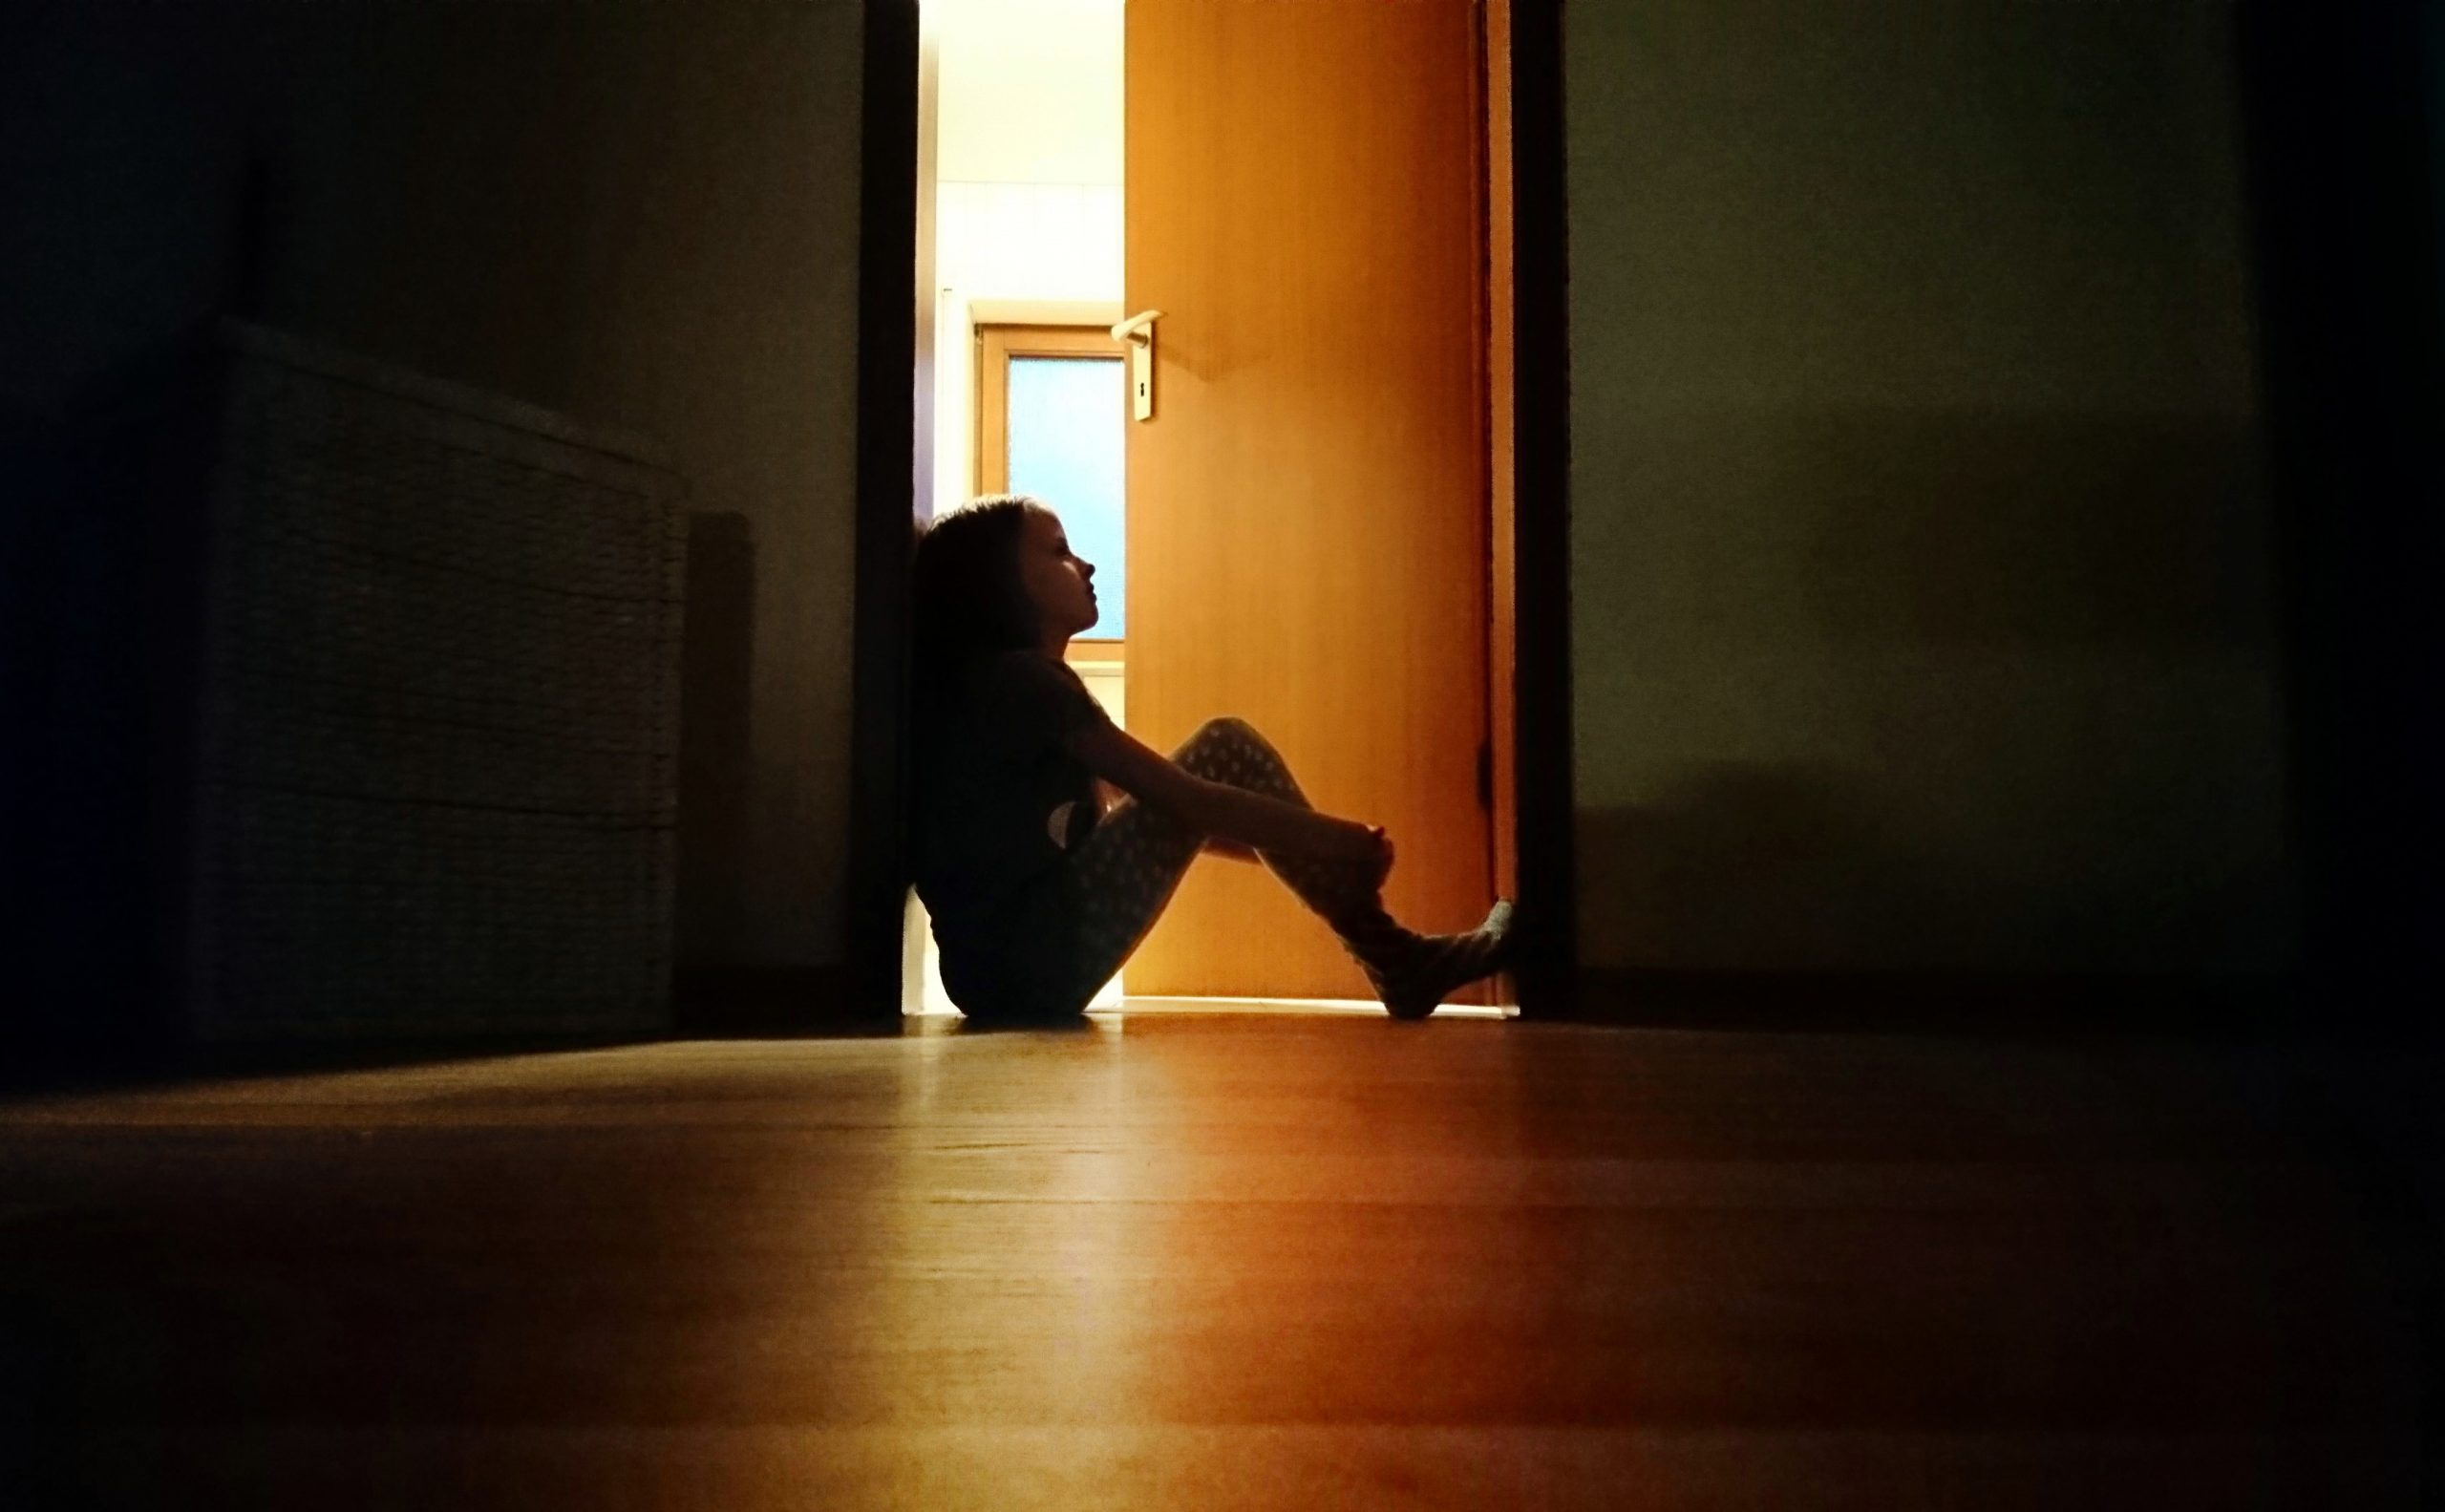 Backlit child sitting in a dark doorway in contemplation